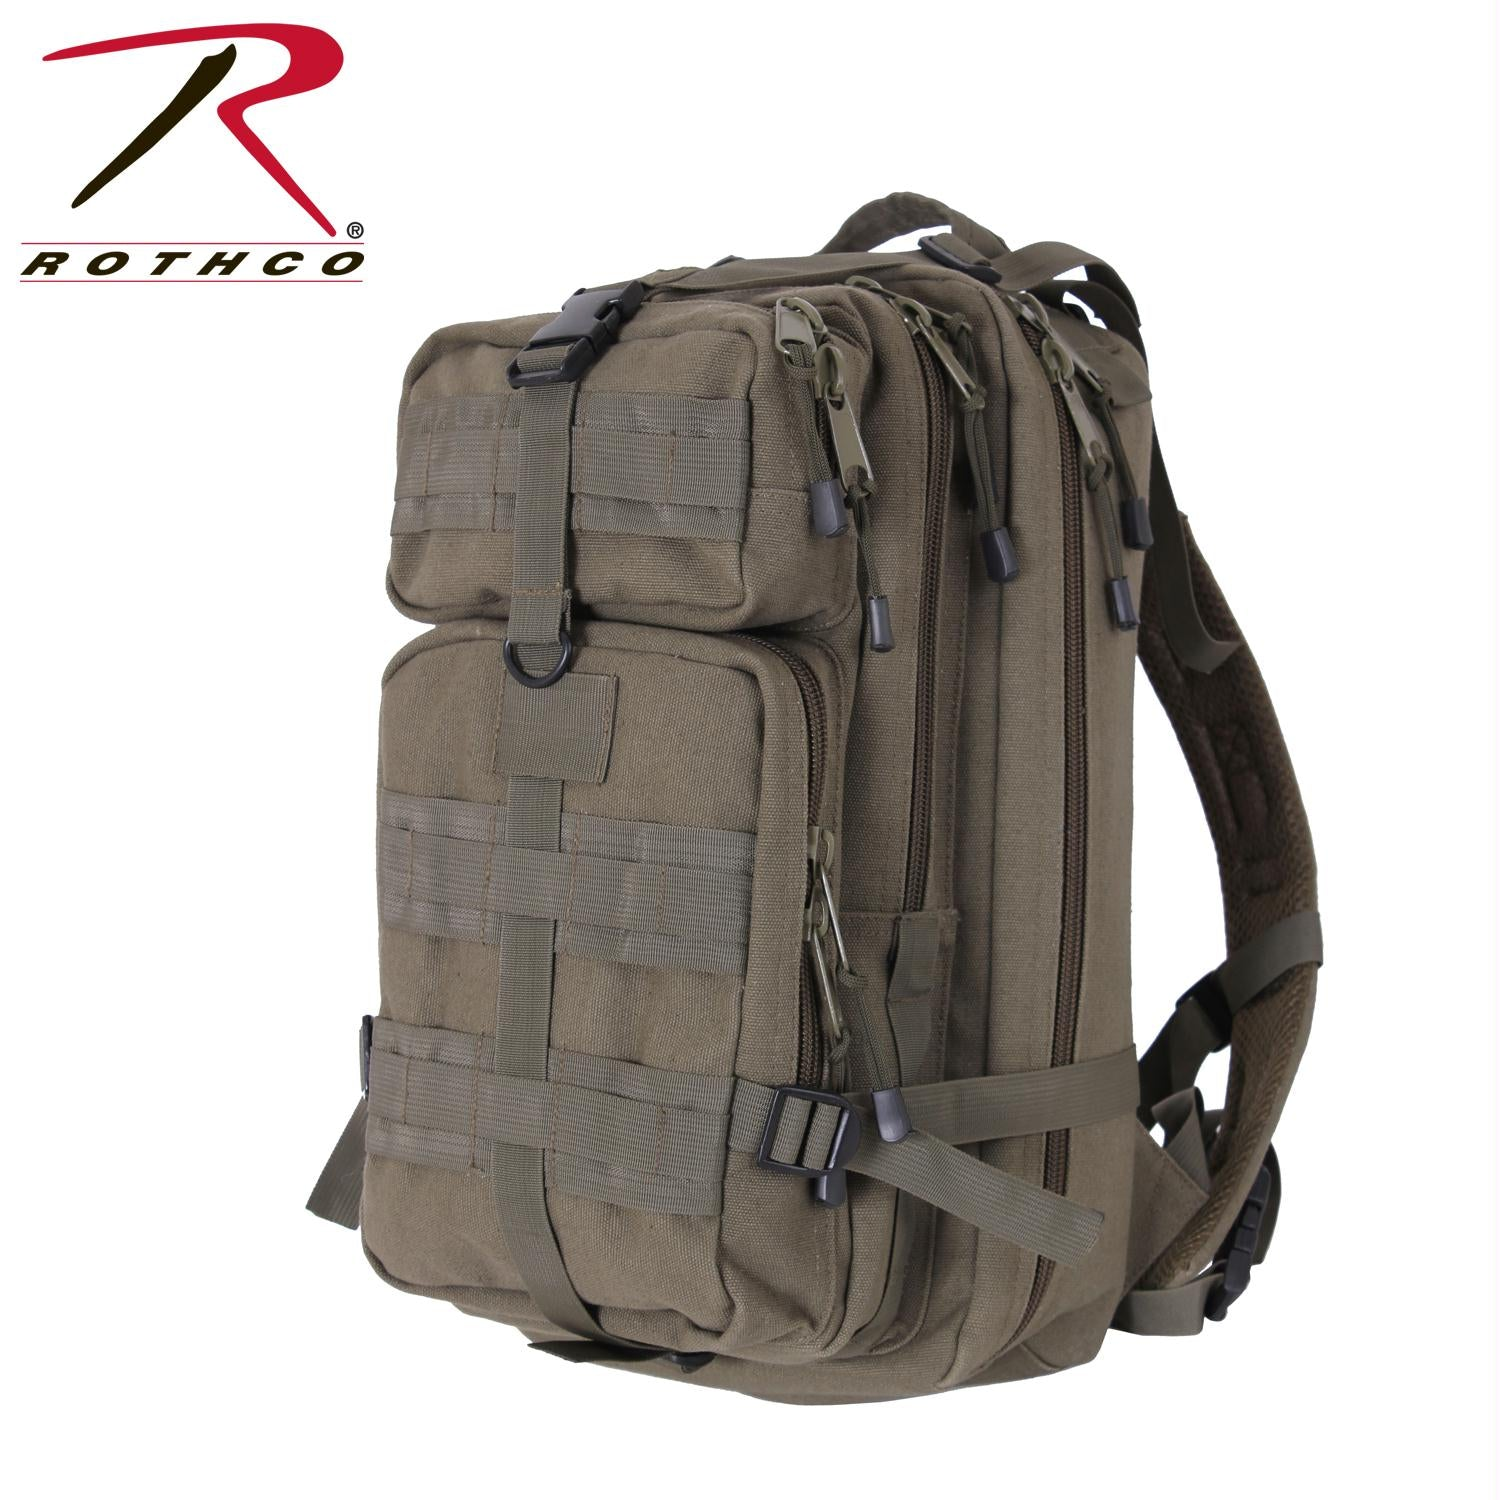 Rothco Tacticanvas Go Pack - Olive Drab